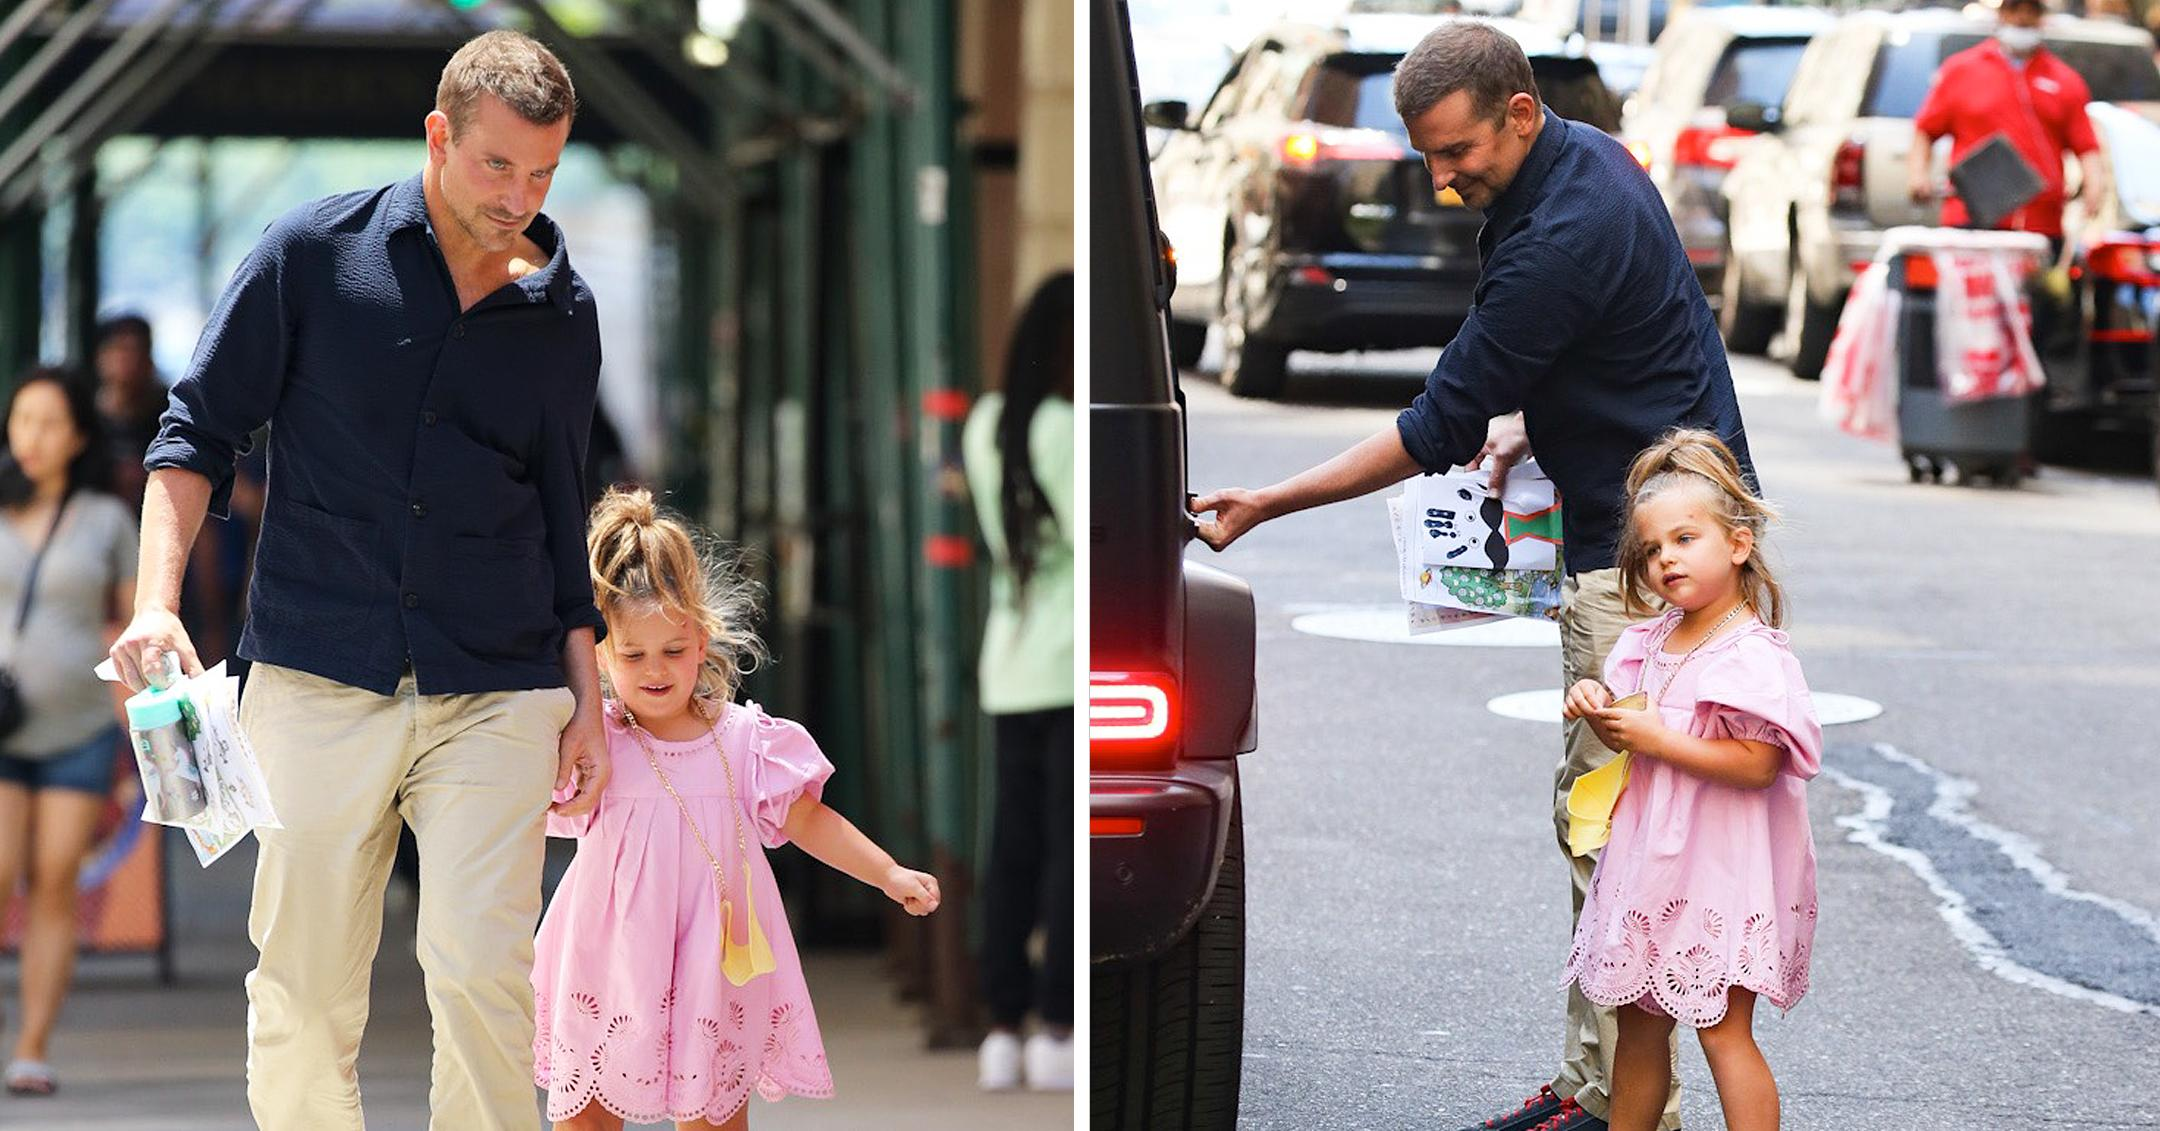 bradley cooper held hands with his daughter lea de seine while out in new york city mh